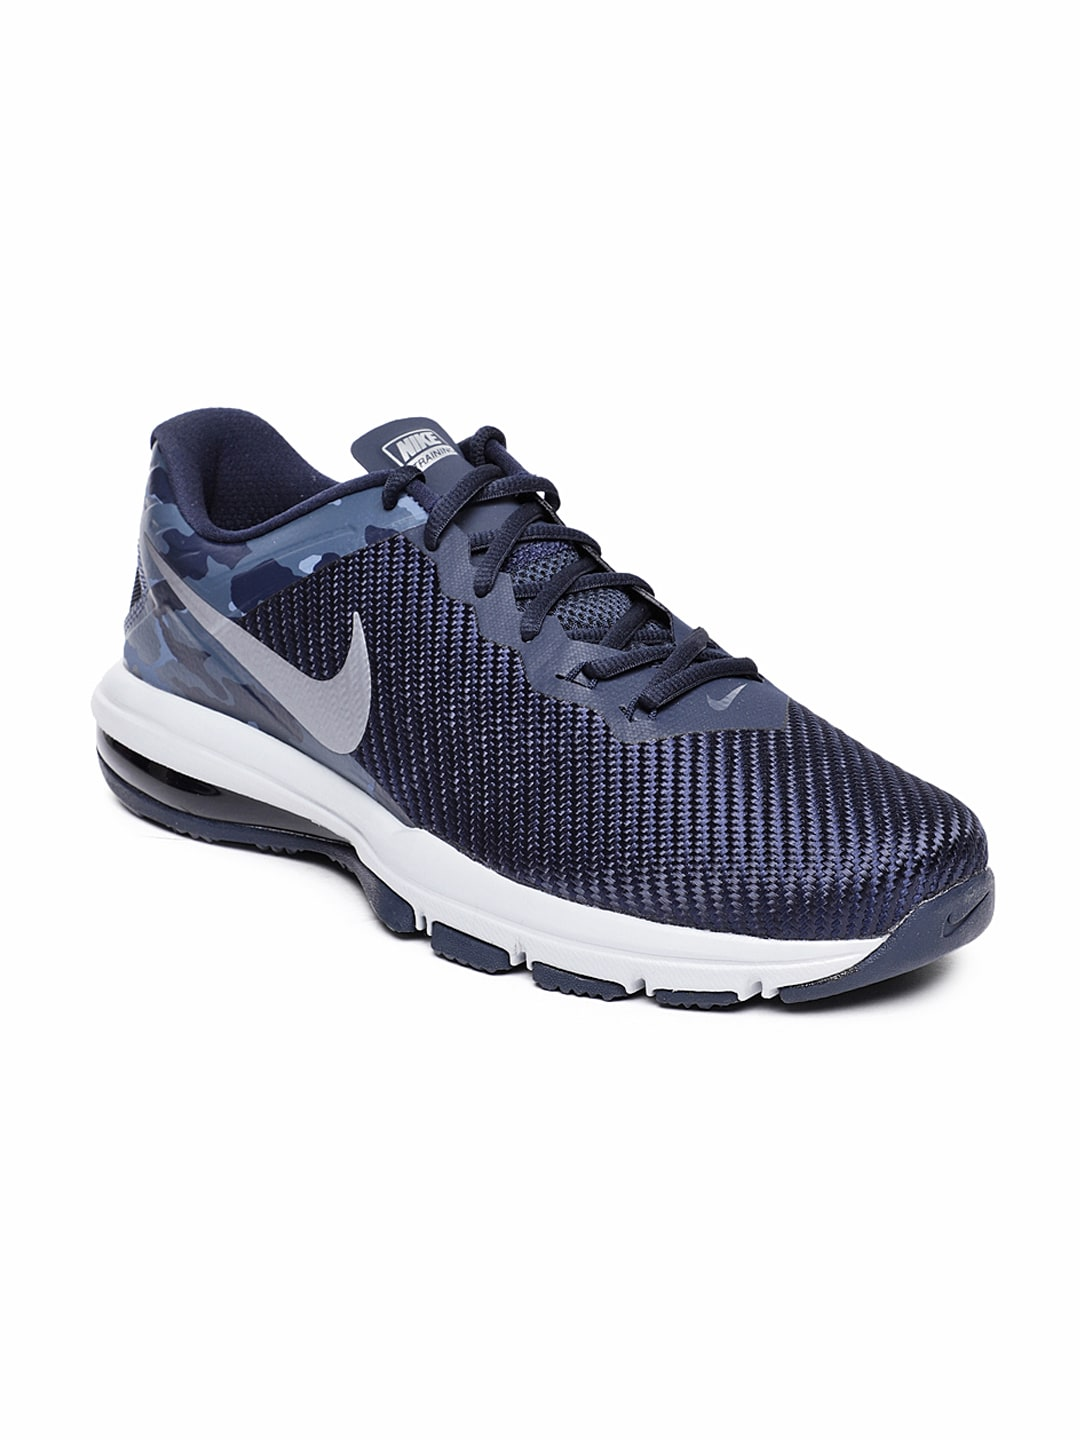 ec3f723fe06 Nike - Shop for Nike Apparels Online in India